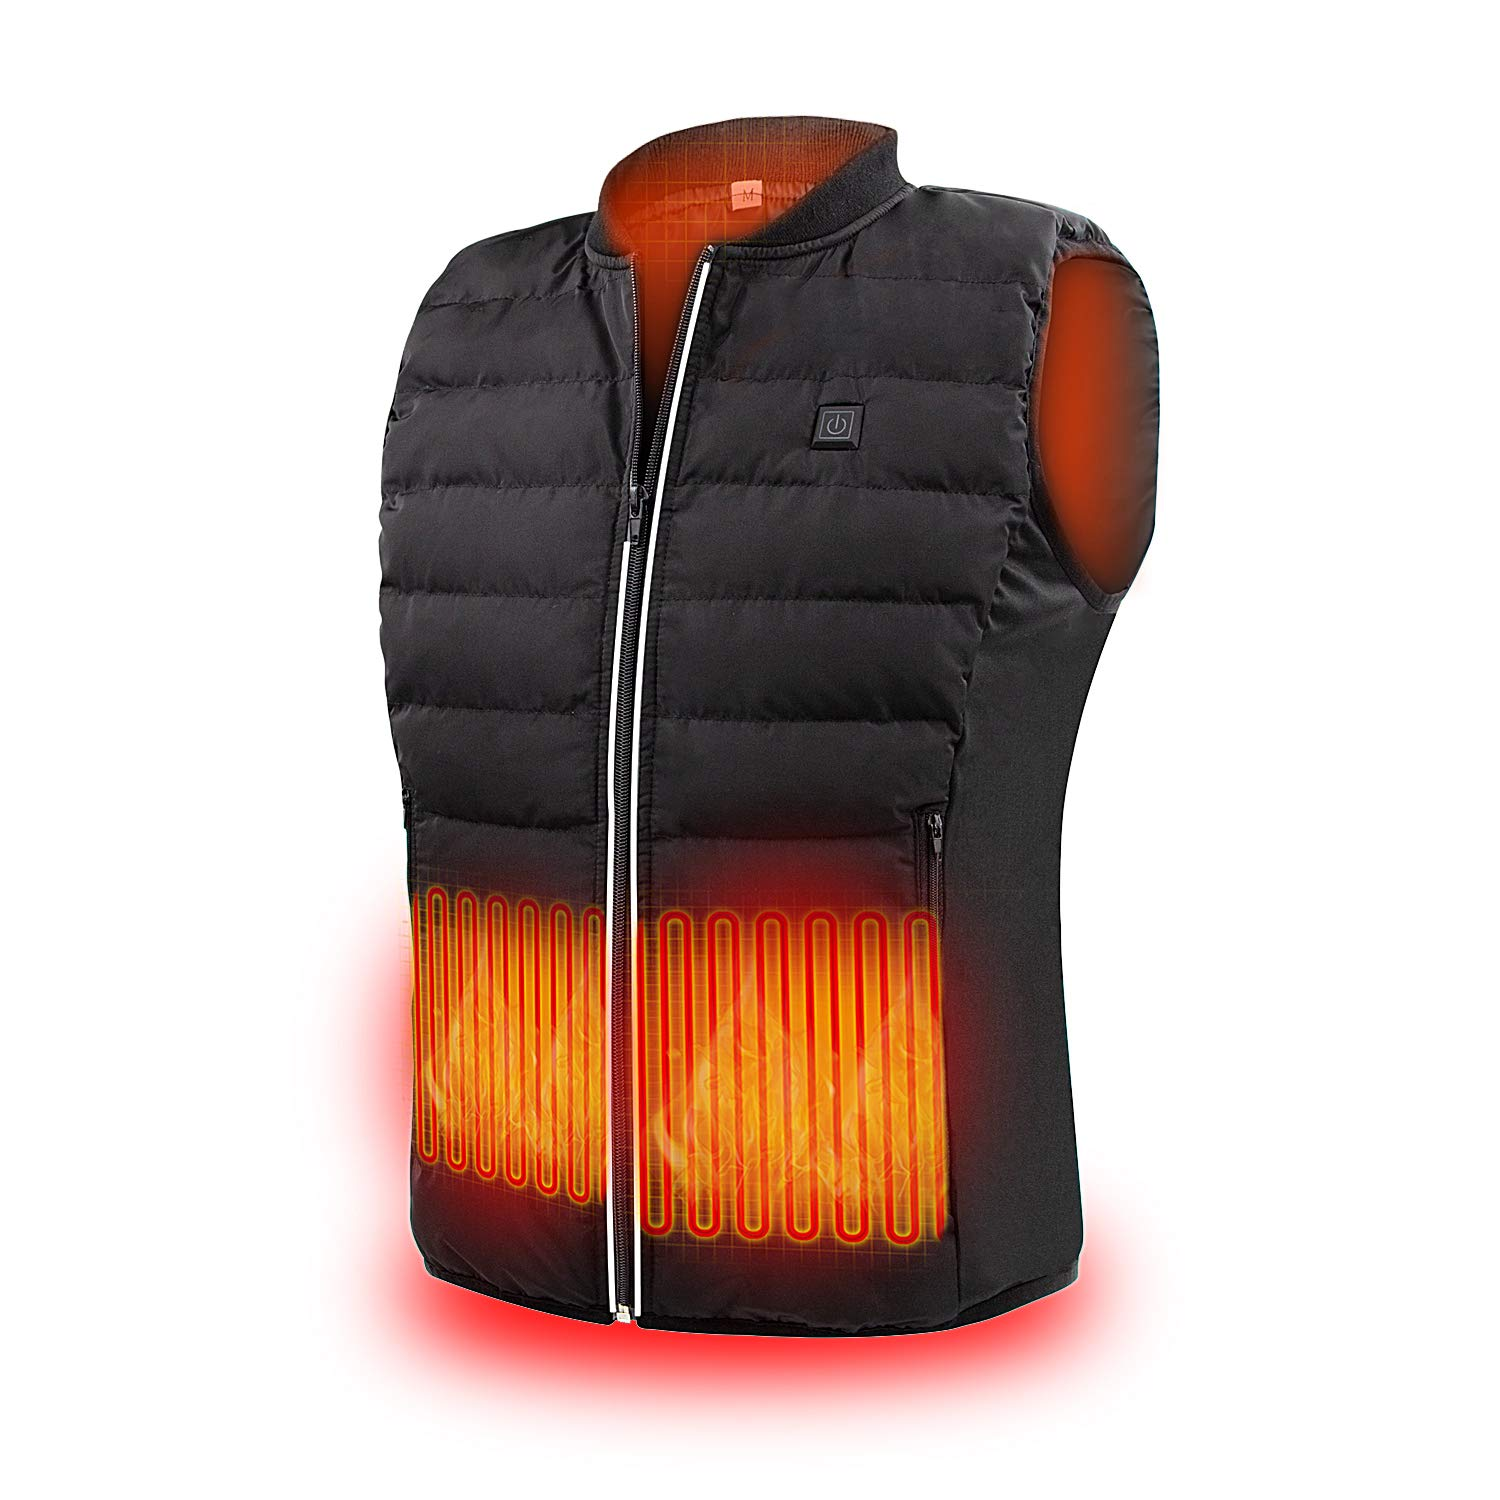 ZLTFashion 5V Heated Vest USB Charging Electric Lightweight Heating Clothing Warm Vest Washable Adjustable Heated Jackets for Men Women Motorcycle Camping (Battery Not Included)